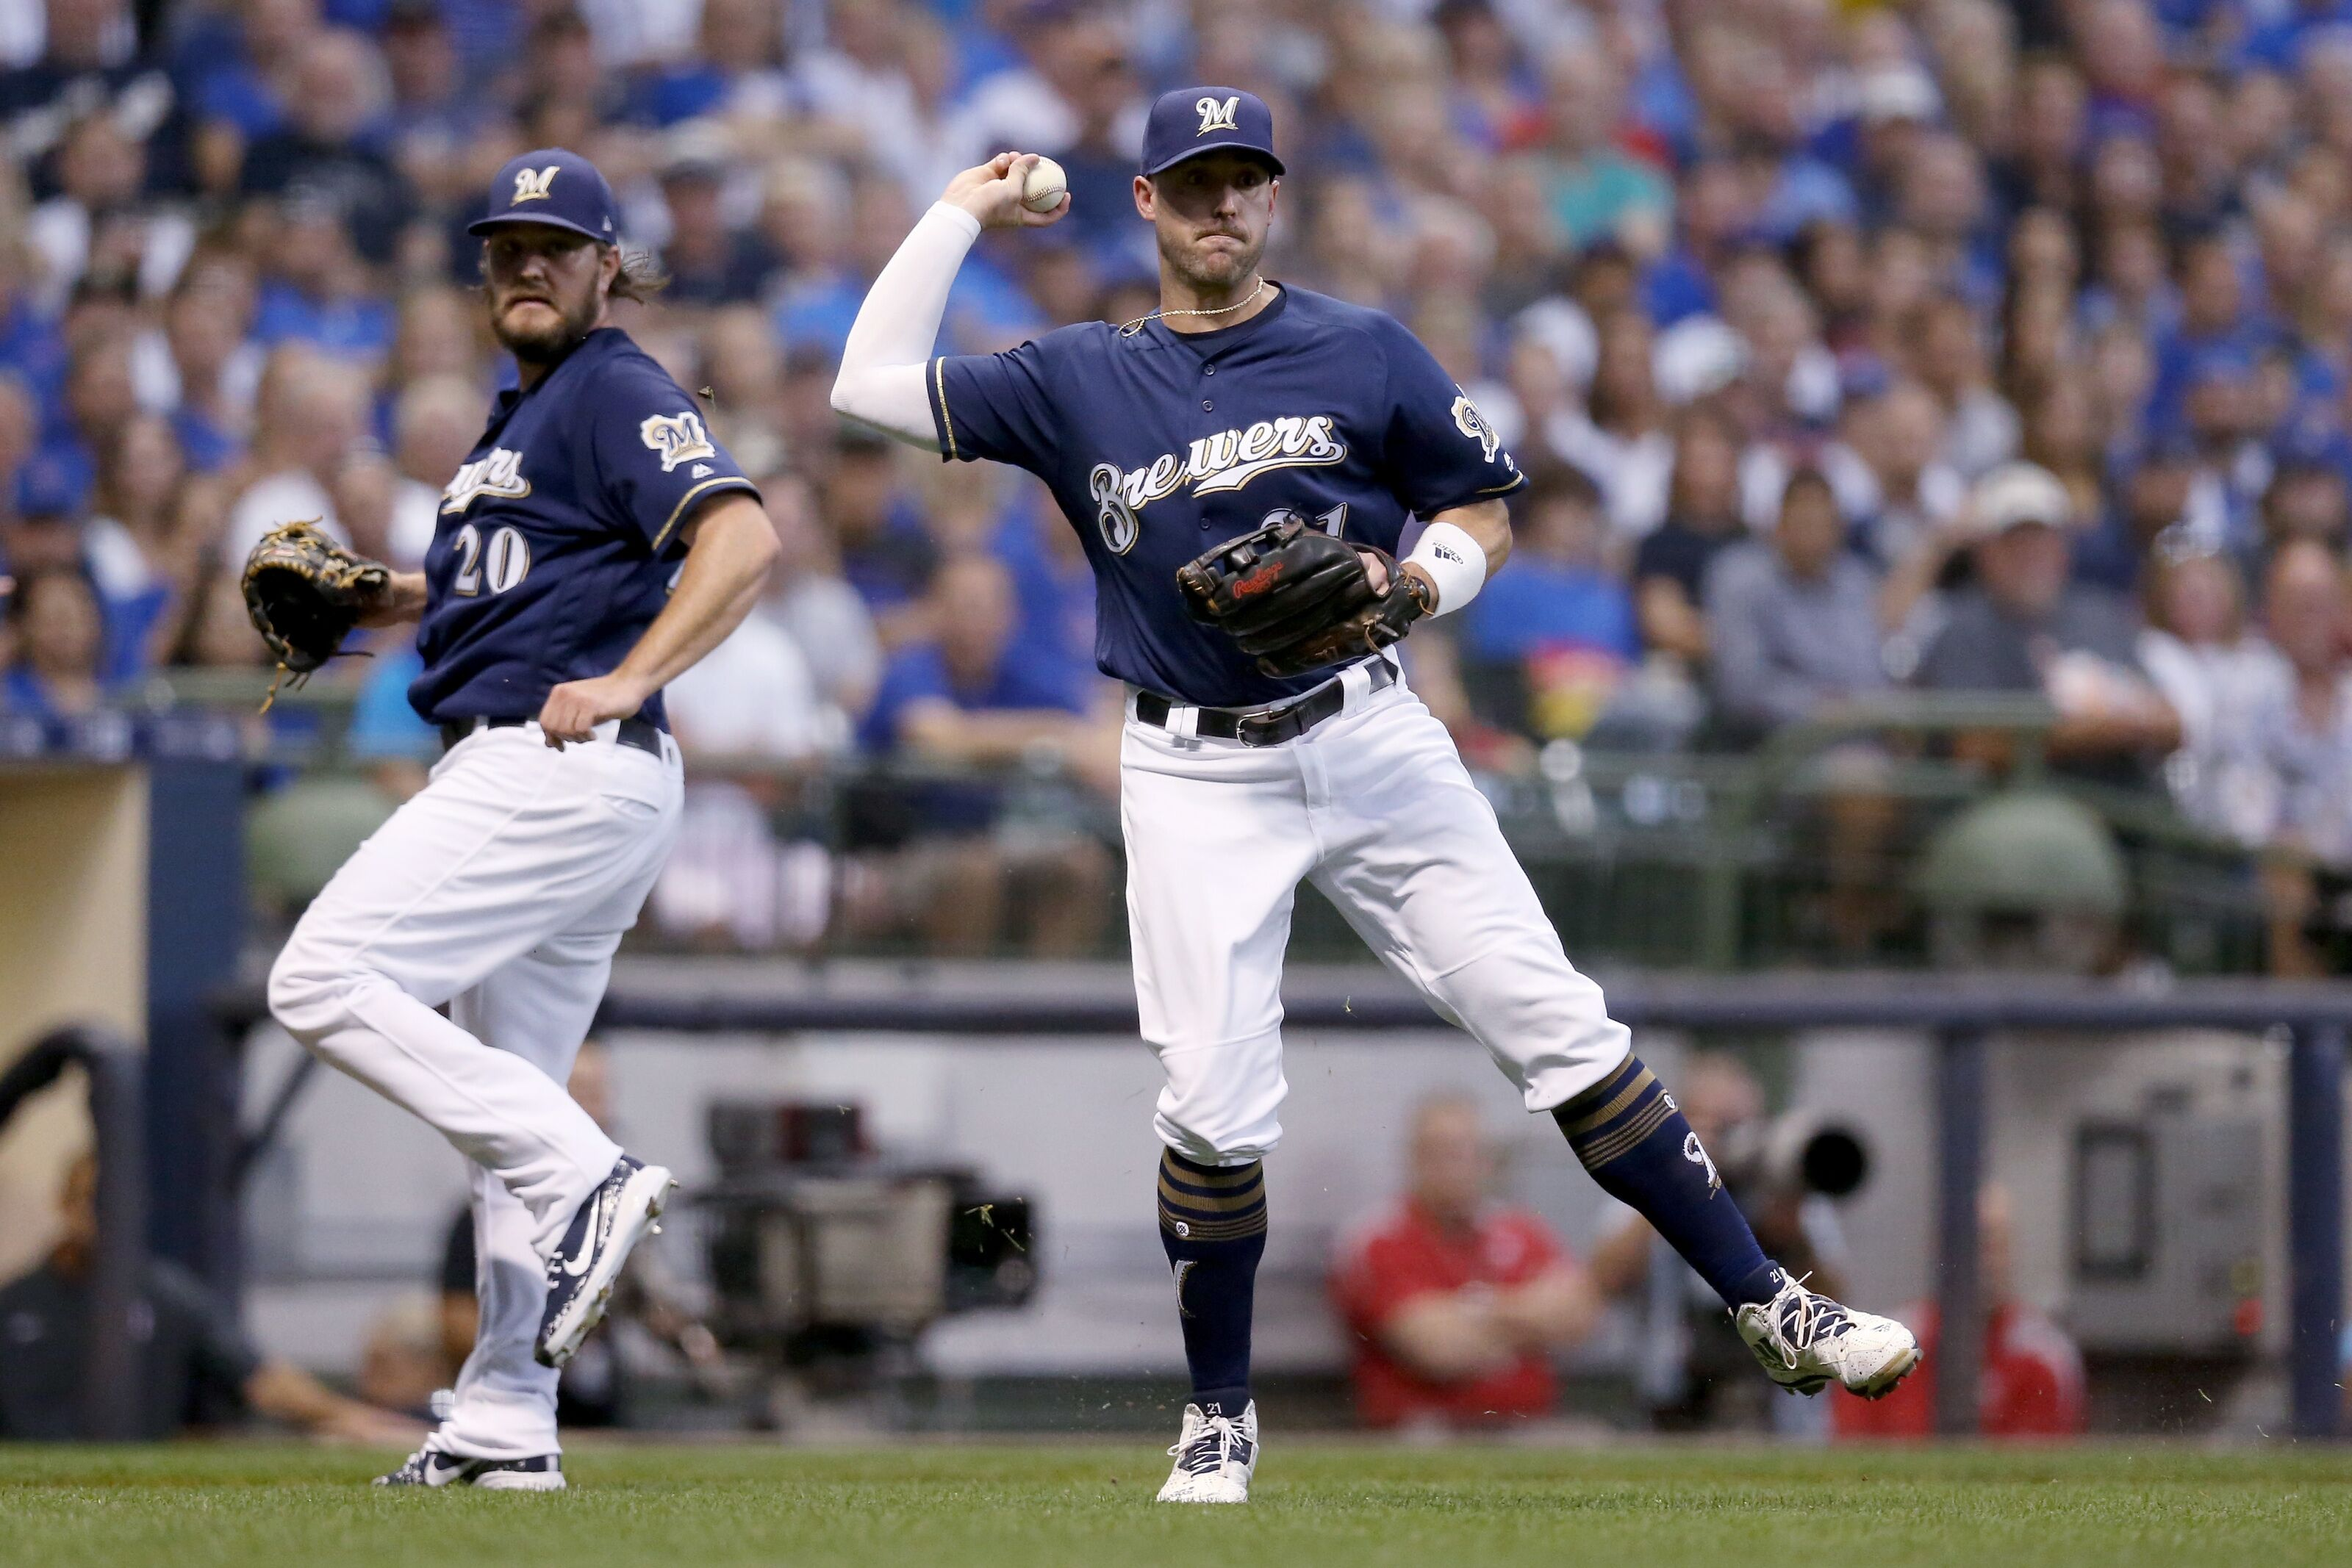 Blue Jays: Travis Shaw had as many as 14 suitors including Red Sox